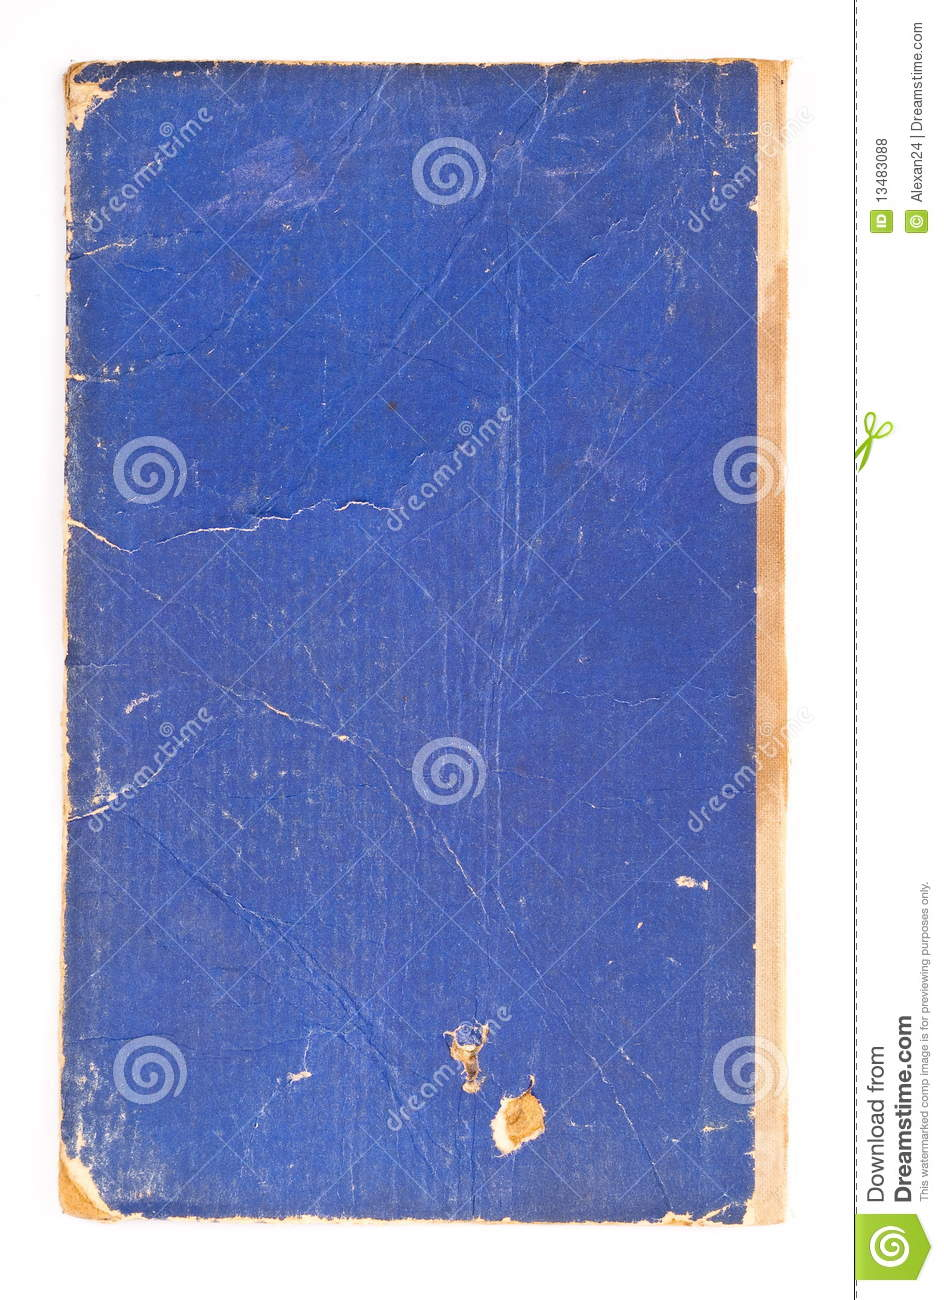 Blue Cover Cookbook : Blue cover old book royalty free stock photos image